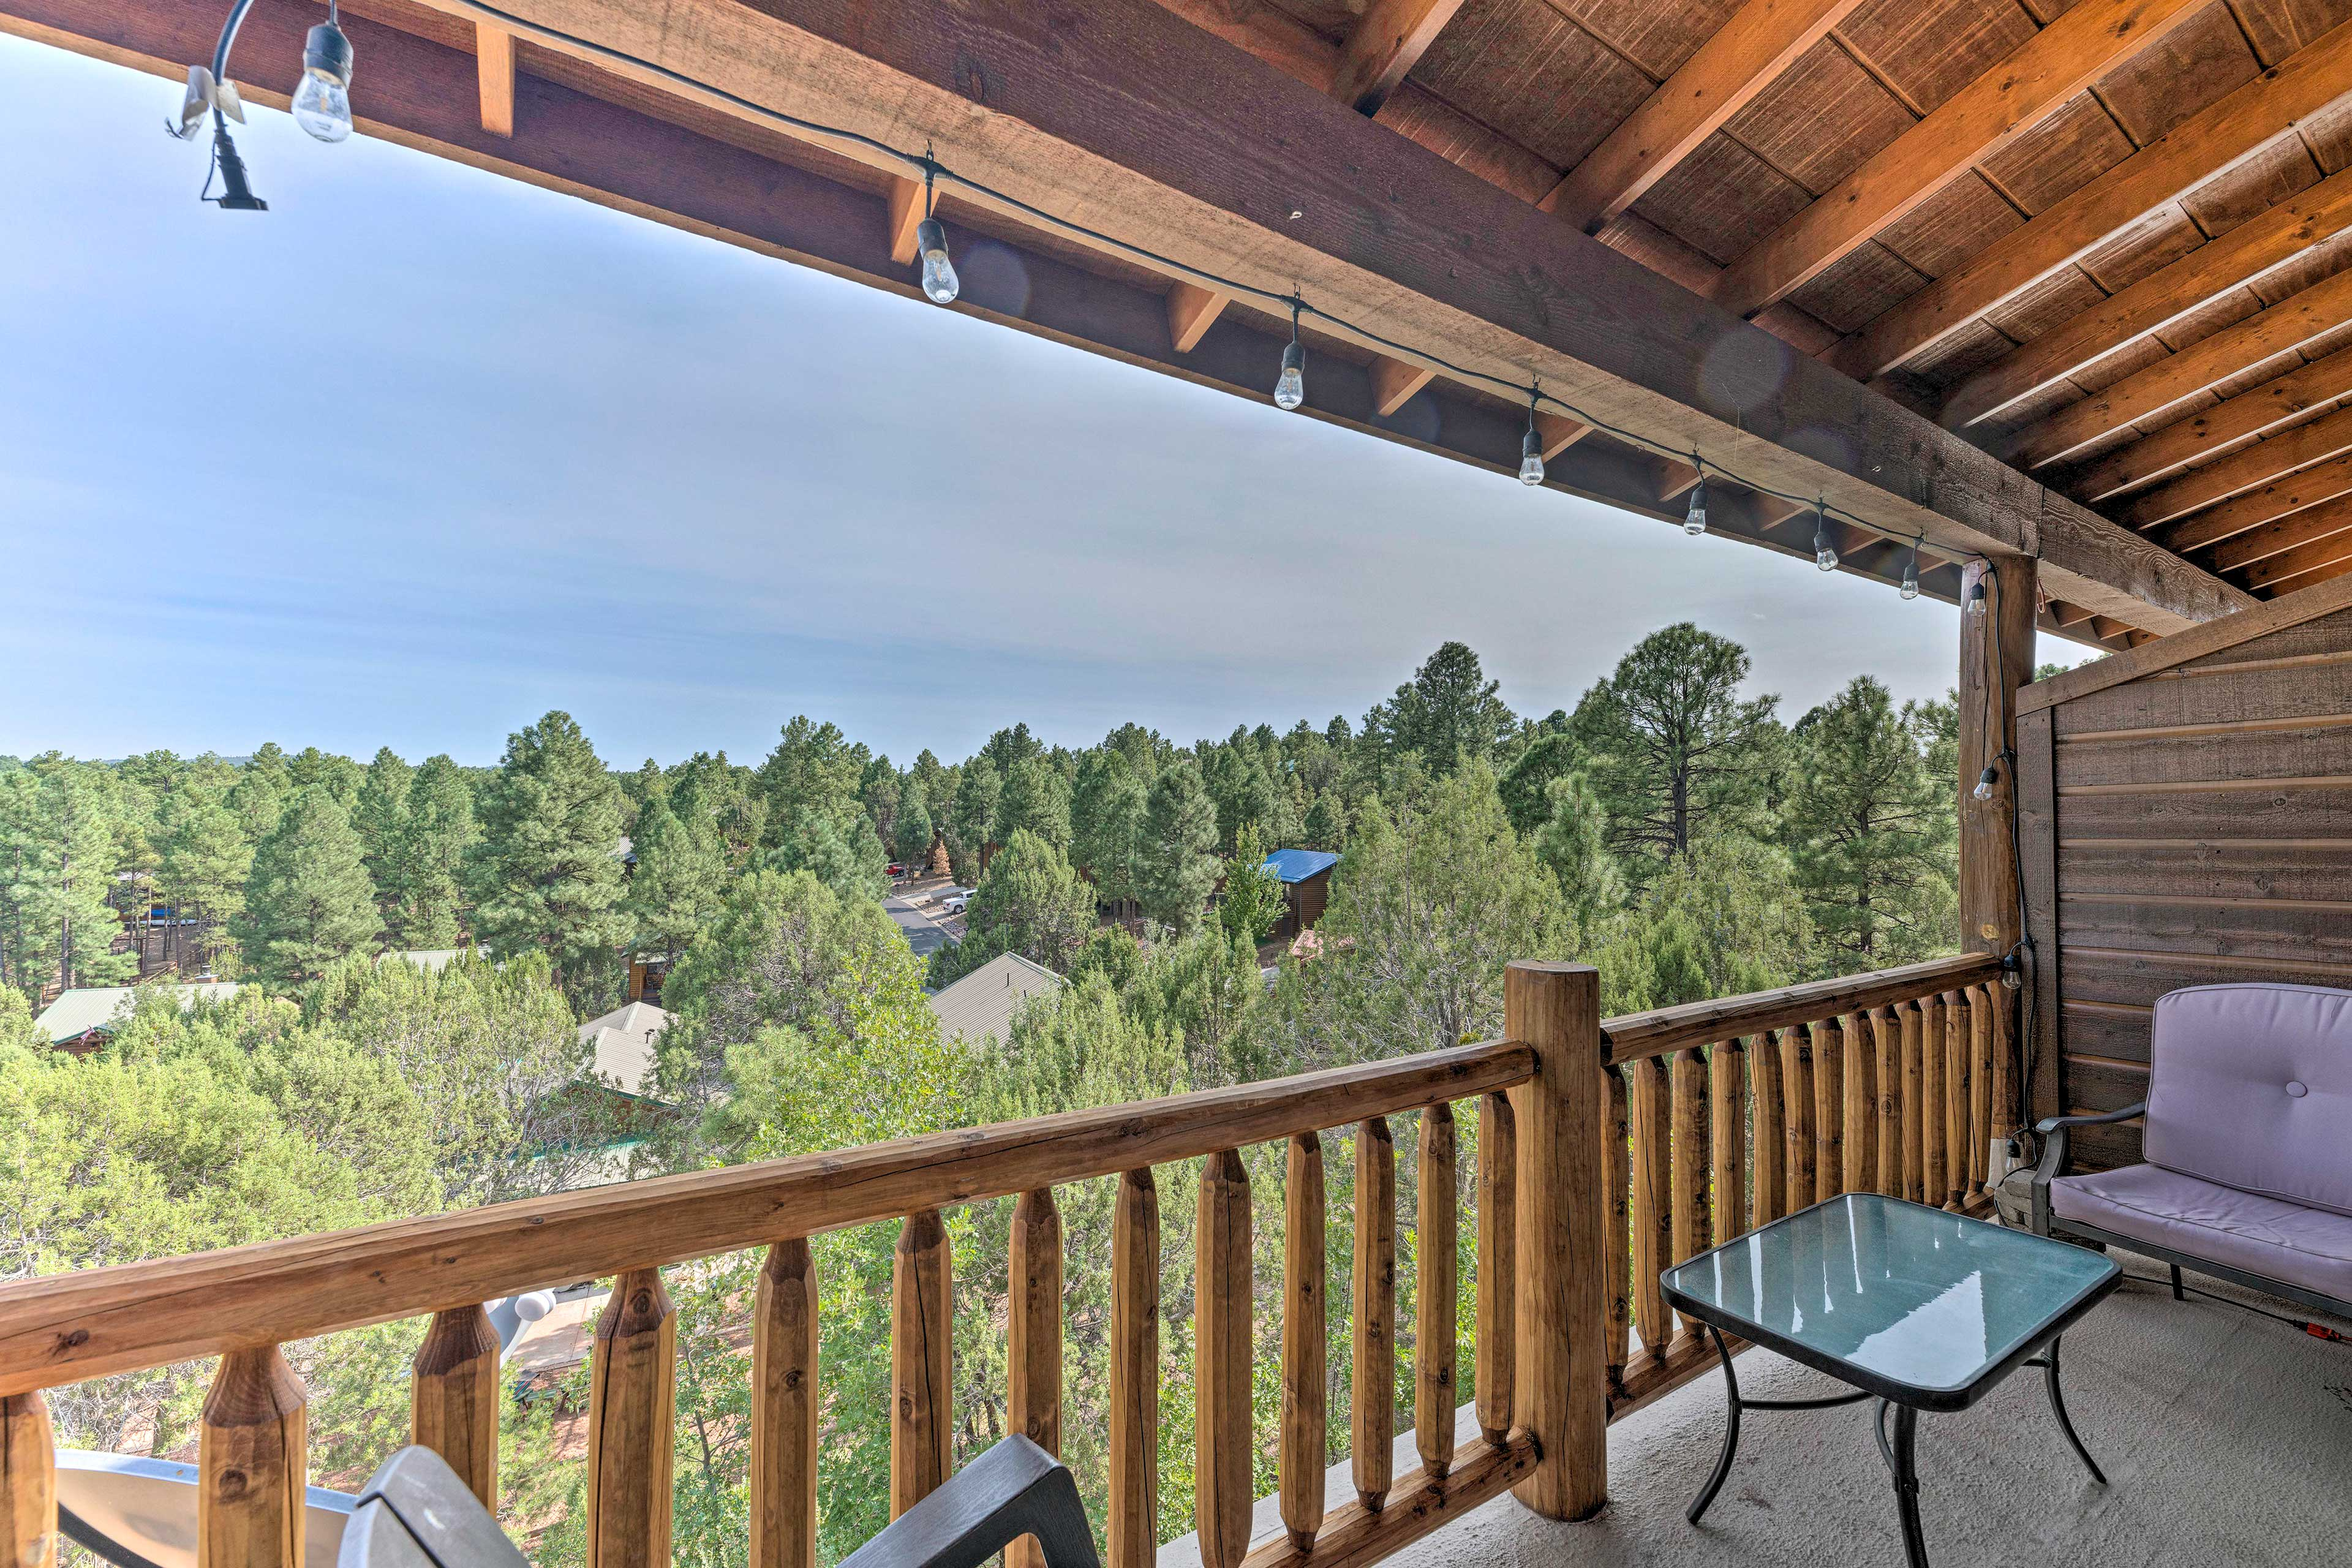 Sip your morning coffee on the covered balcony overlooking the pines.